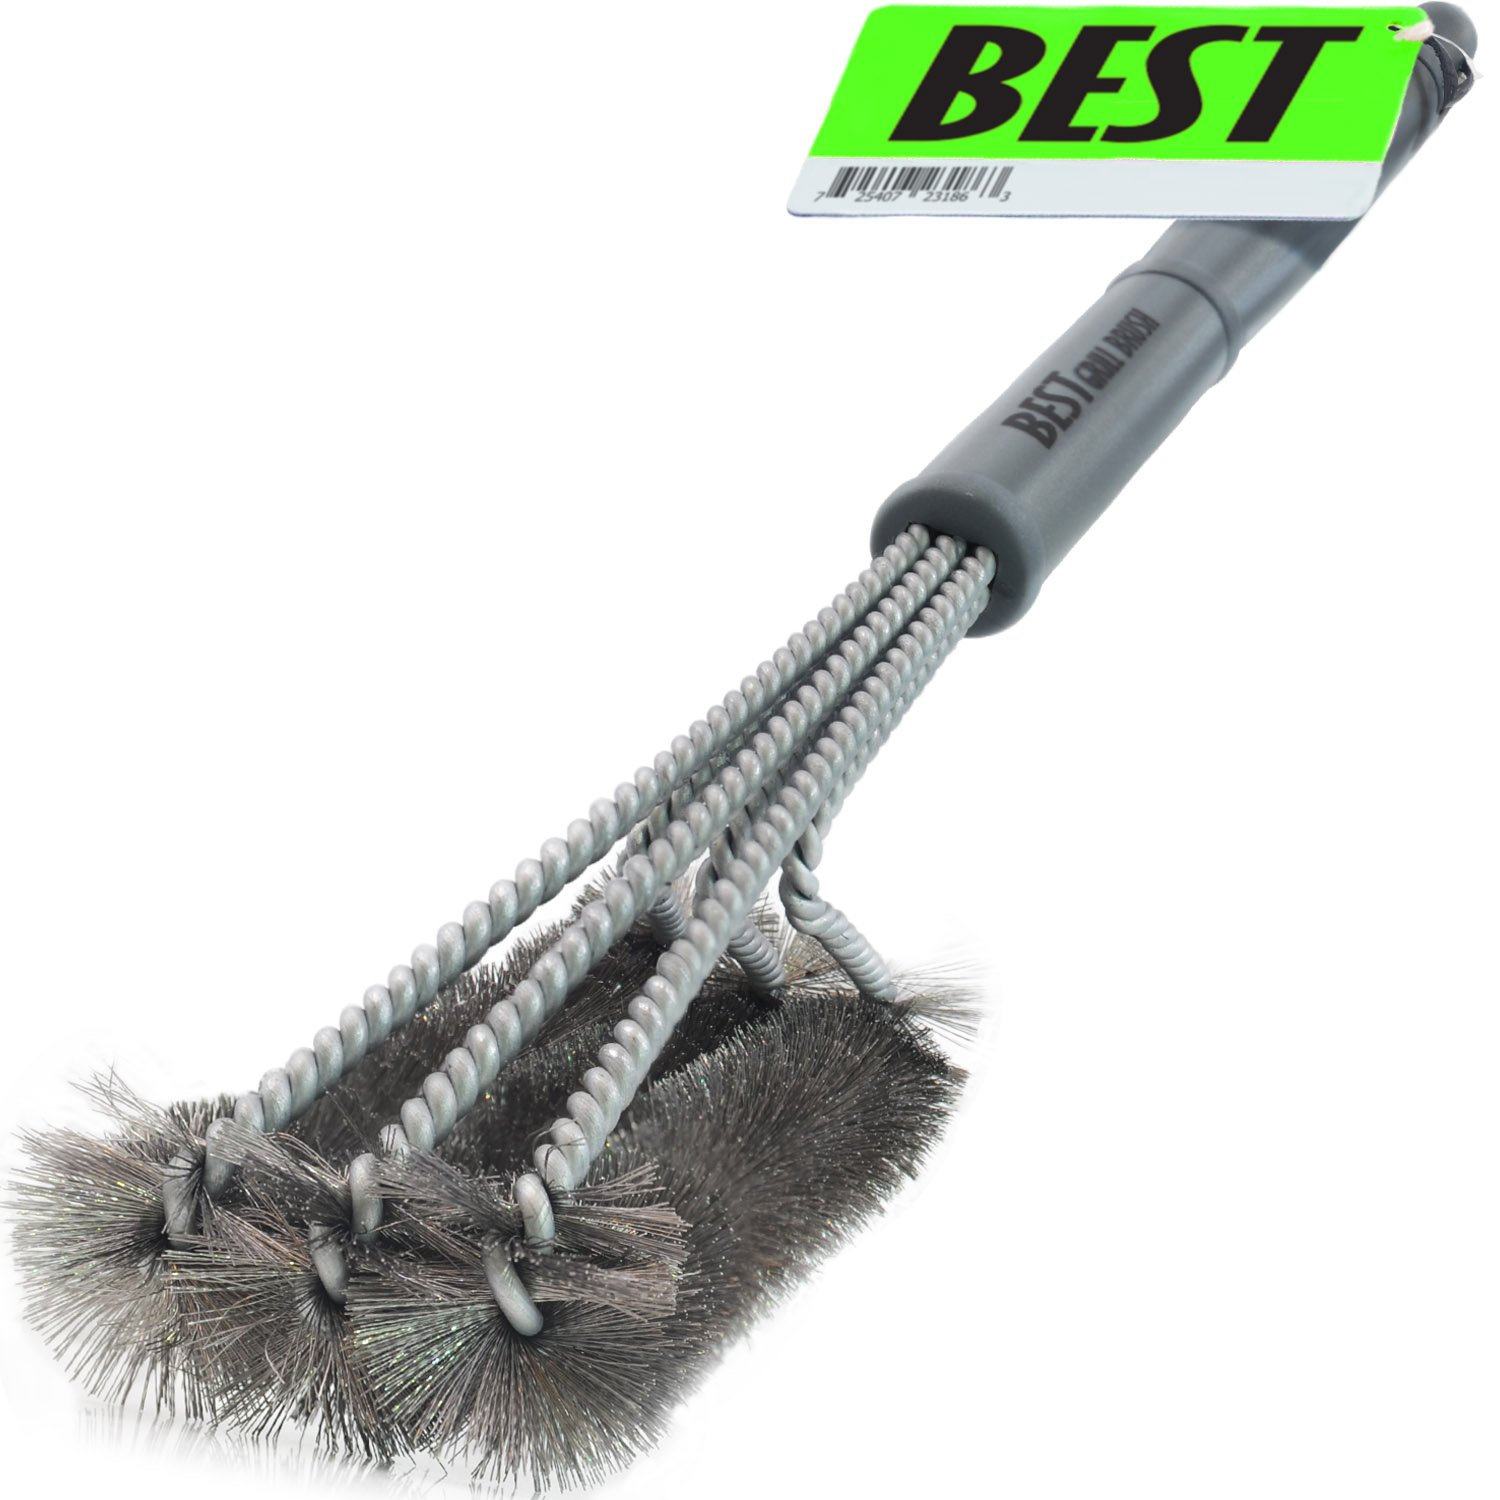 Best BBQ Grill Brush Stainless Steel 18'' Barbecue Cleaning Brush w/Wire Bristles & Soft Comfortable Handle - Perfect Cleaner & Scraper for Grill Cooking Grates